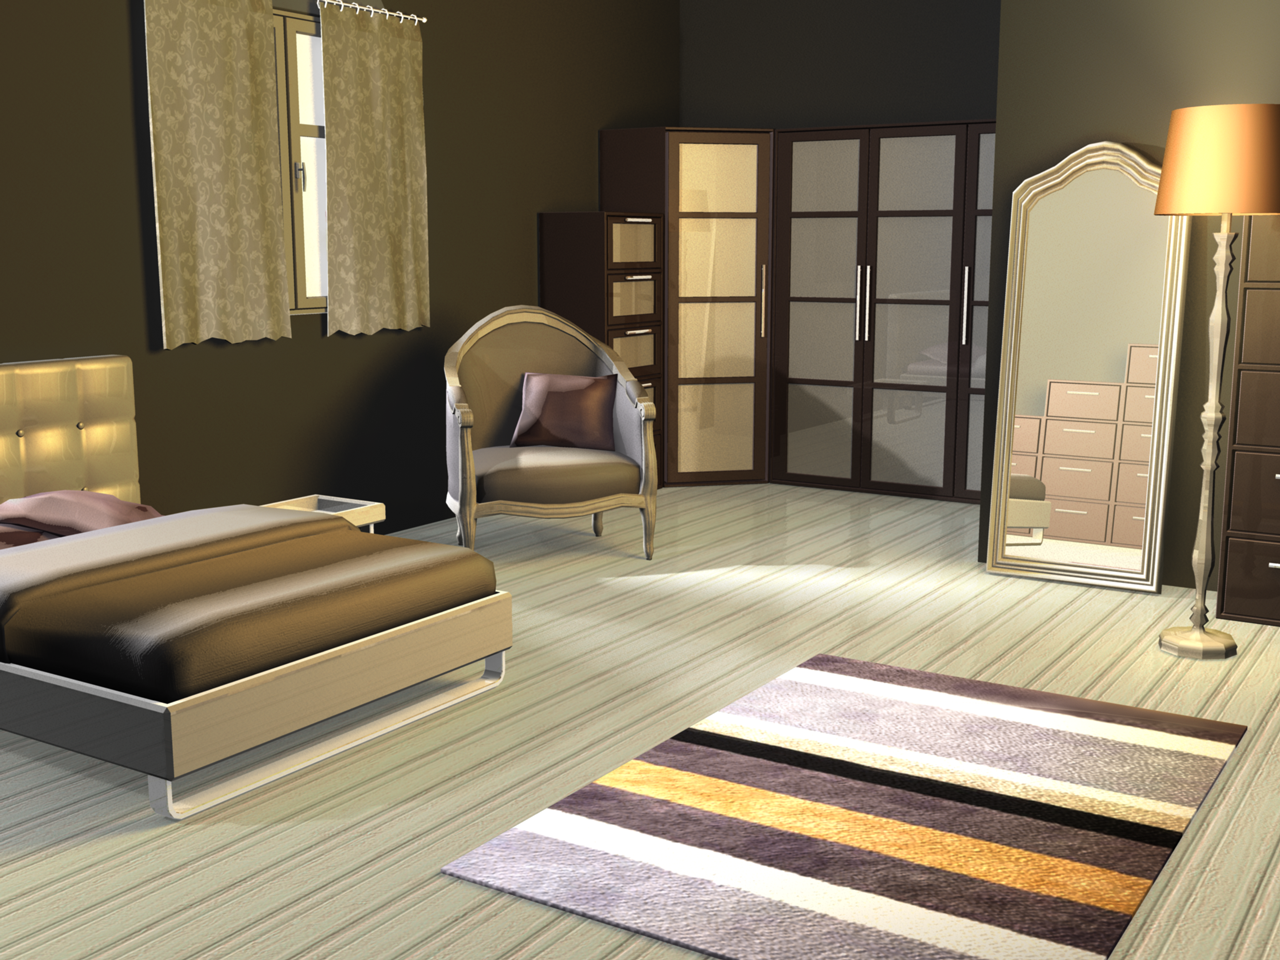 Bedroom Pack 7-4: Promotional Artwork For Home Design 3D